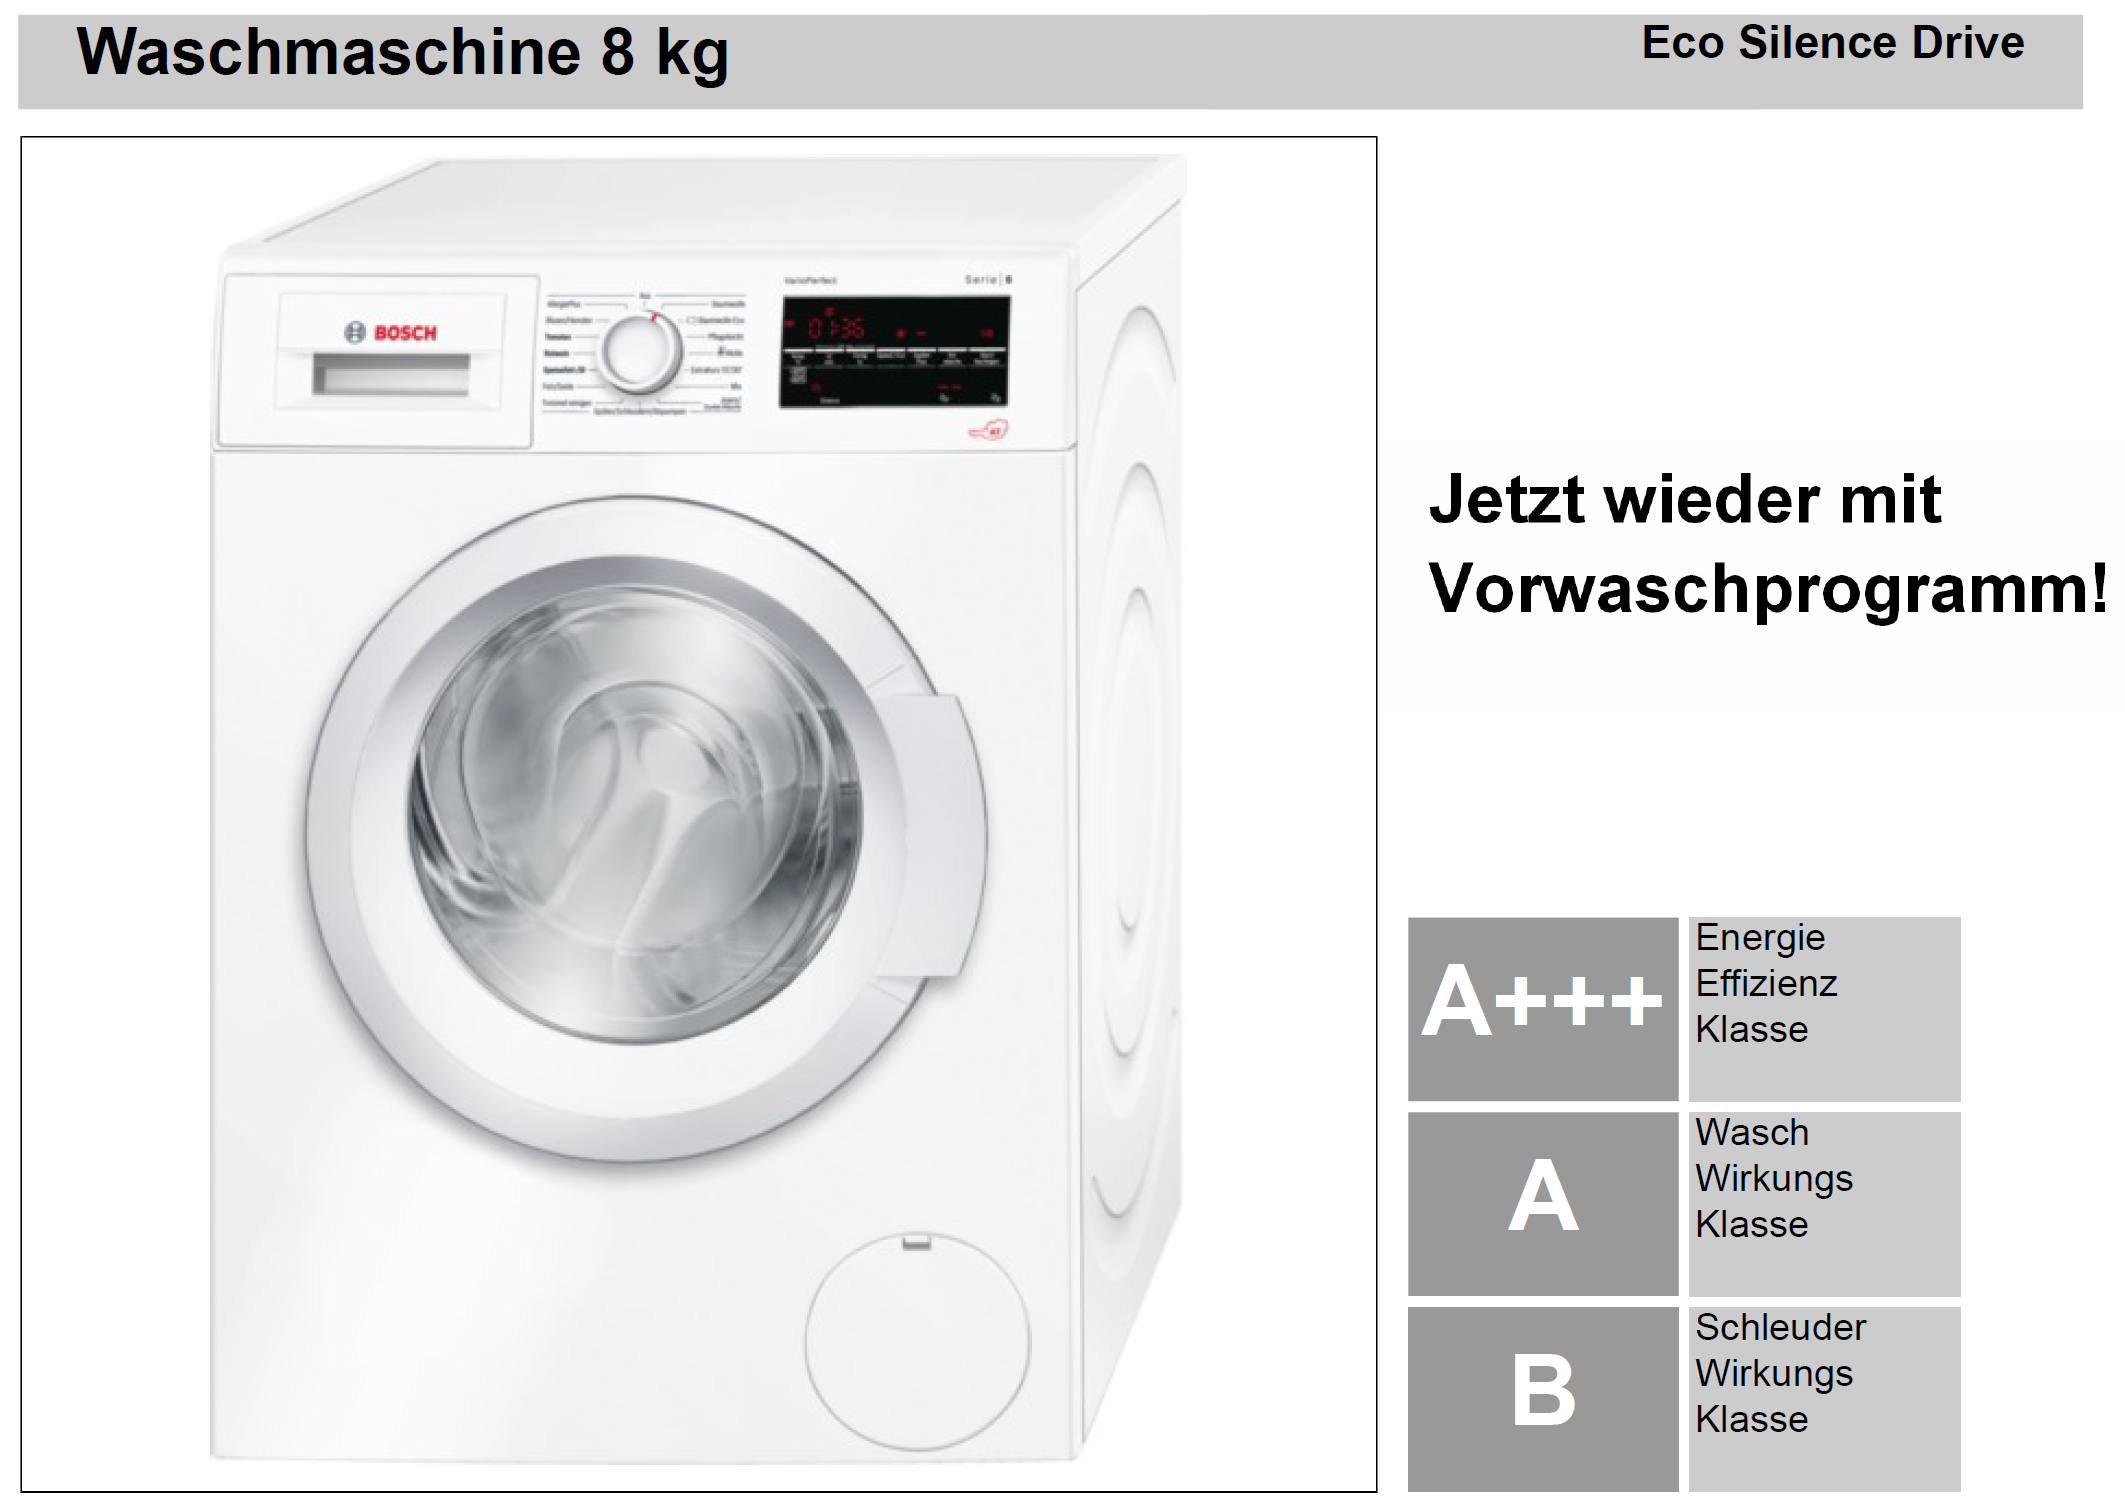 bosch waschmaschine 8kg plan work elektrotechnik gmbh. Black Bedroom Furniture Sets. Home Design Ideas